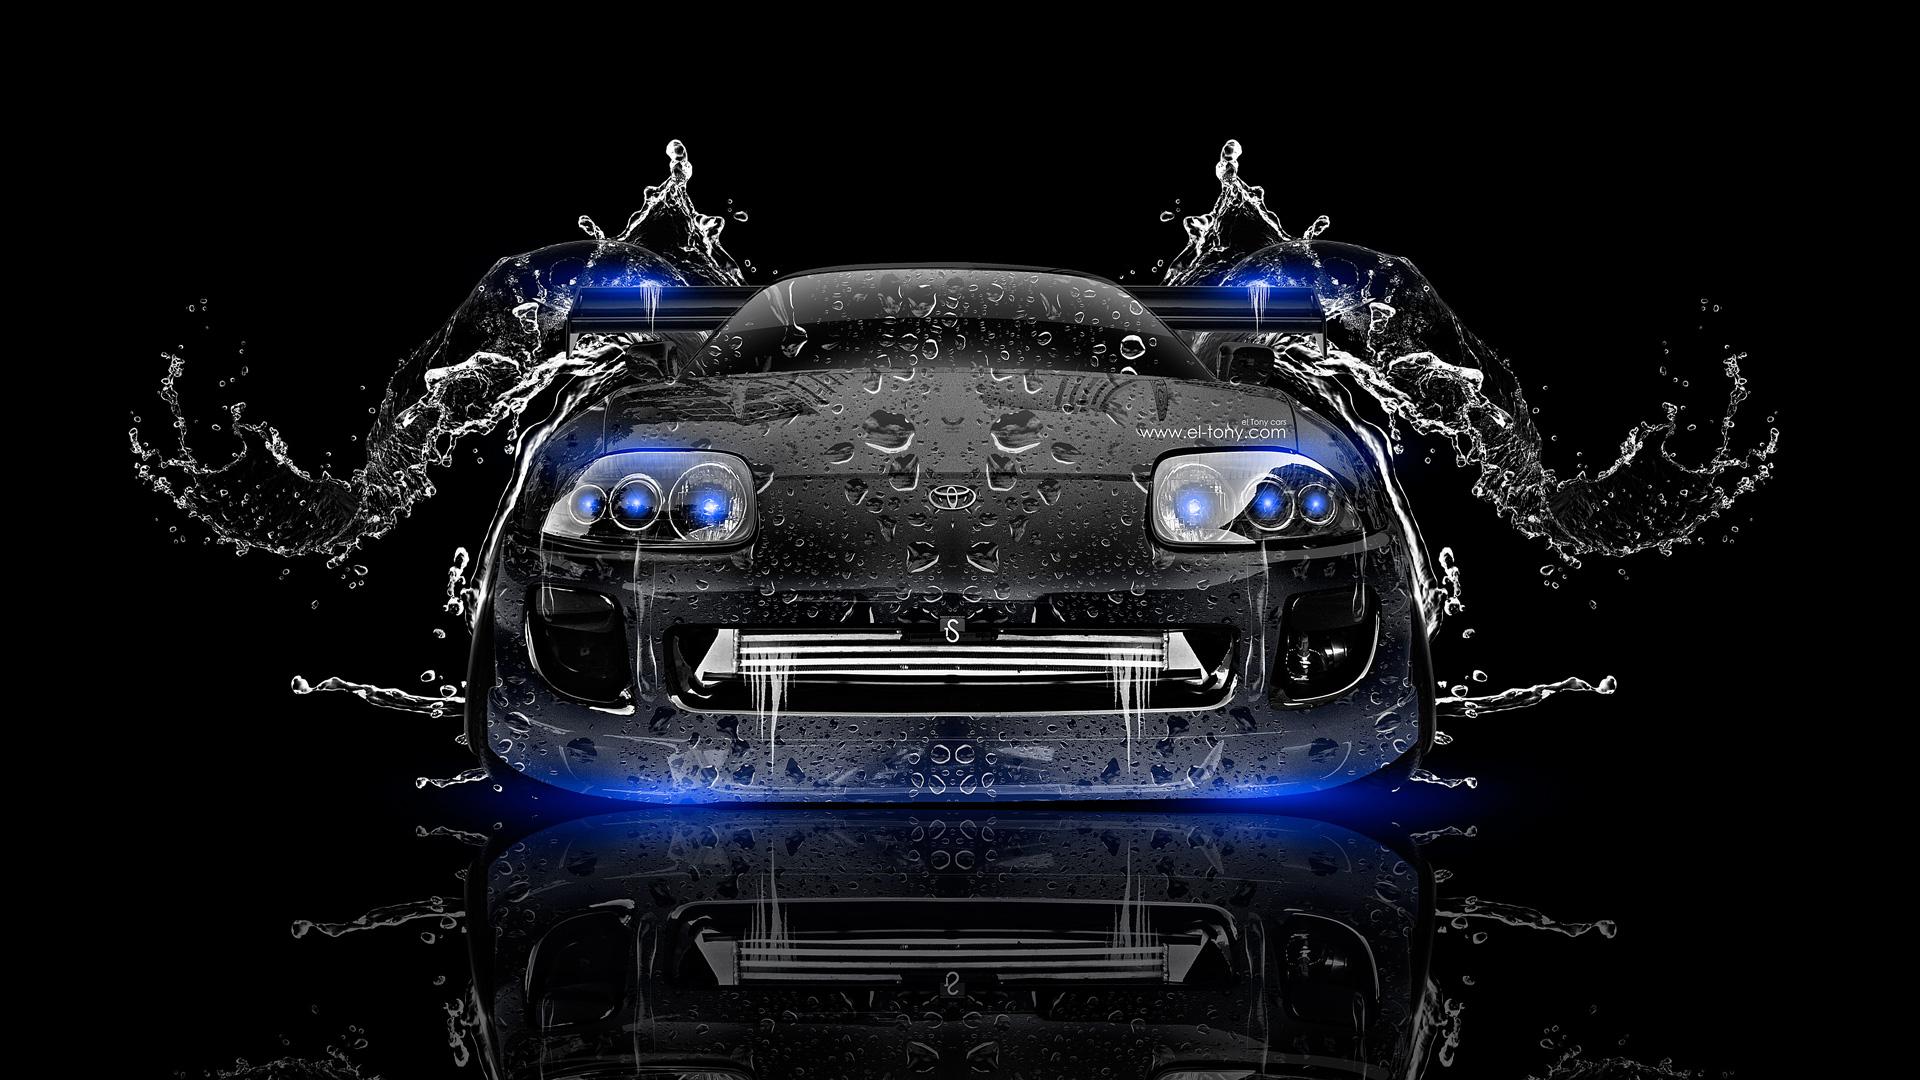 Perfect ... Toyota Supra JDM Front Water Car 2014 Blue